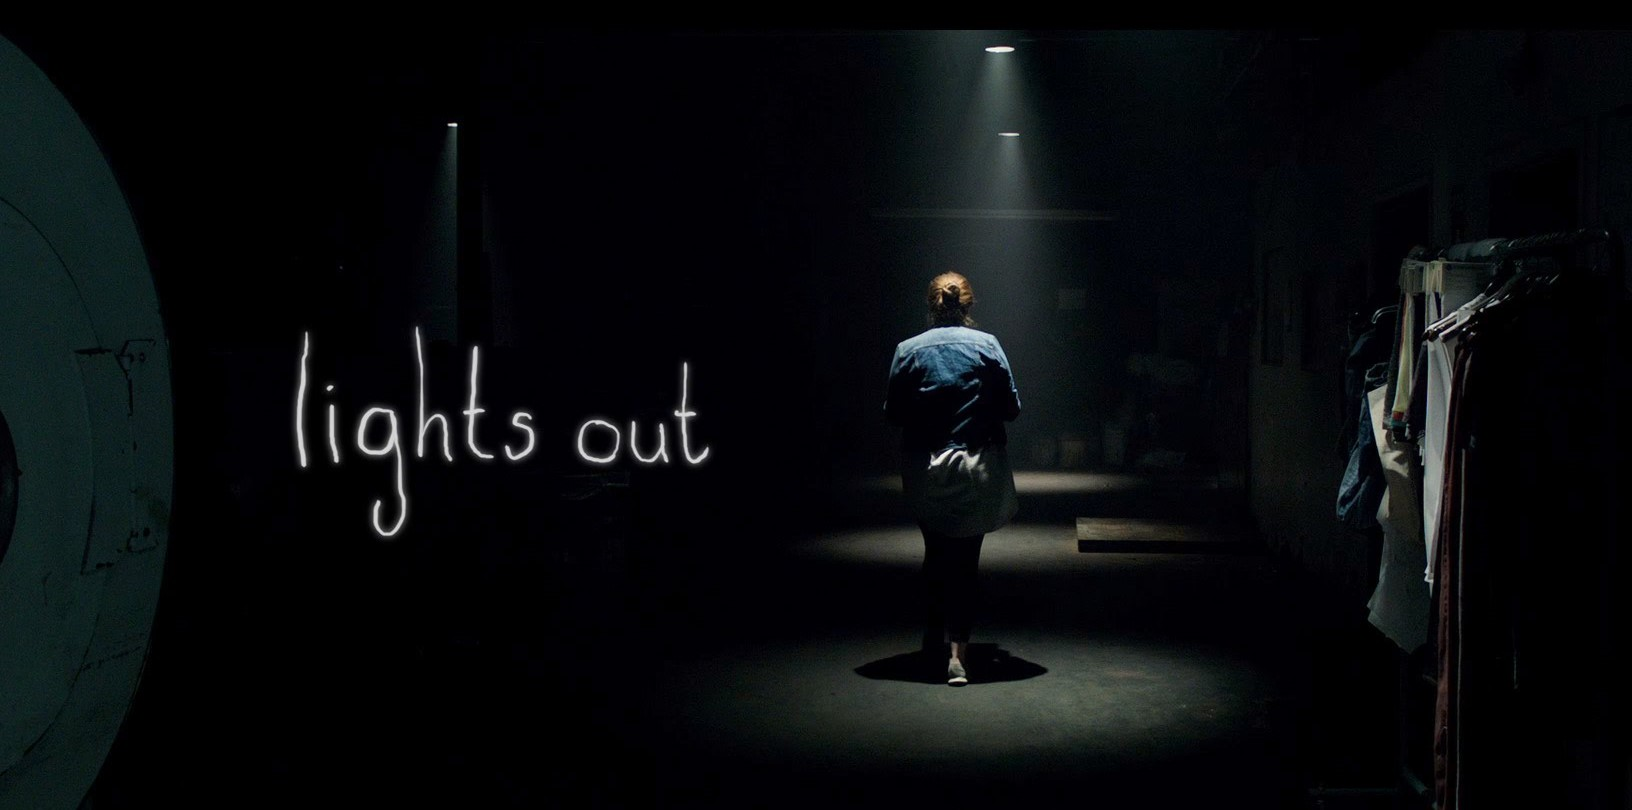 Lights Out – Fear of the dark